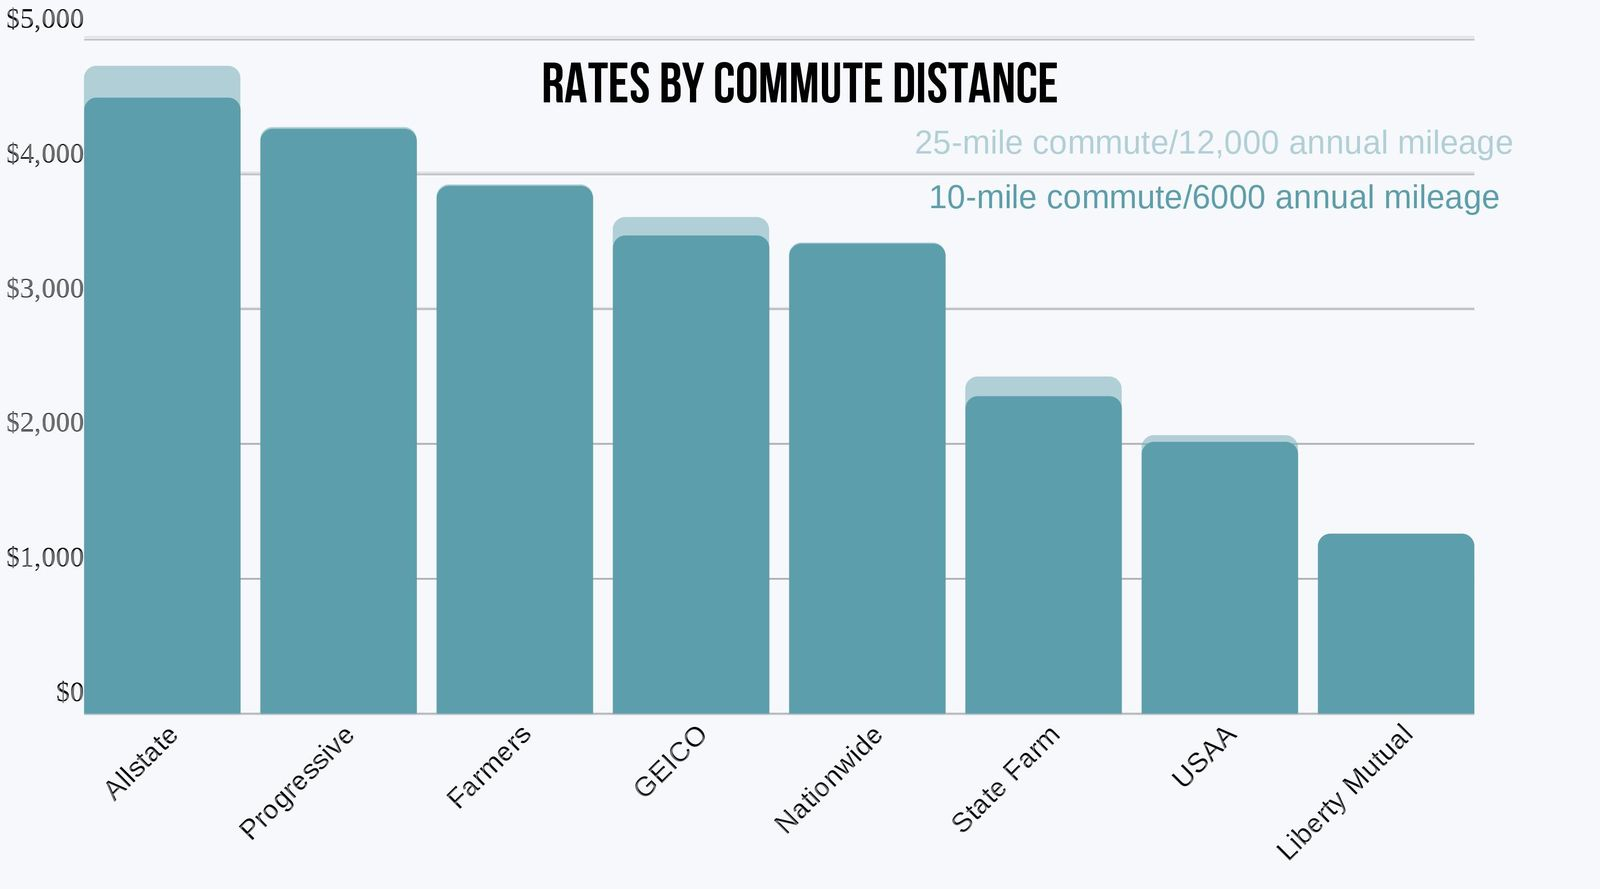 Montana chart of rates by commute